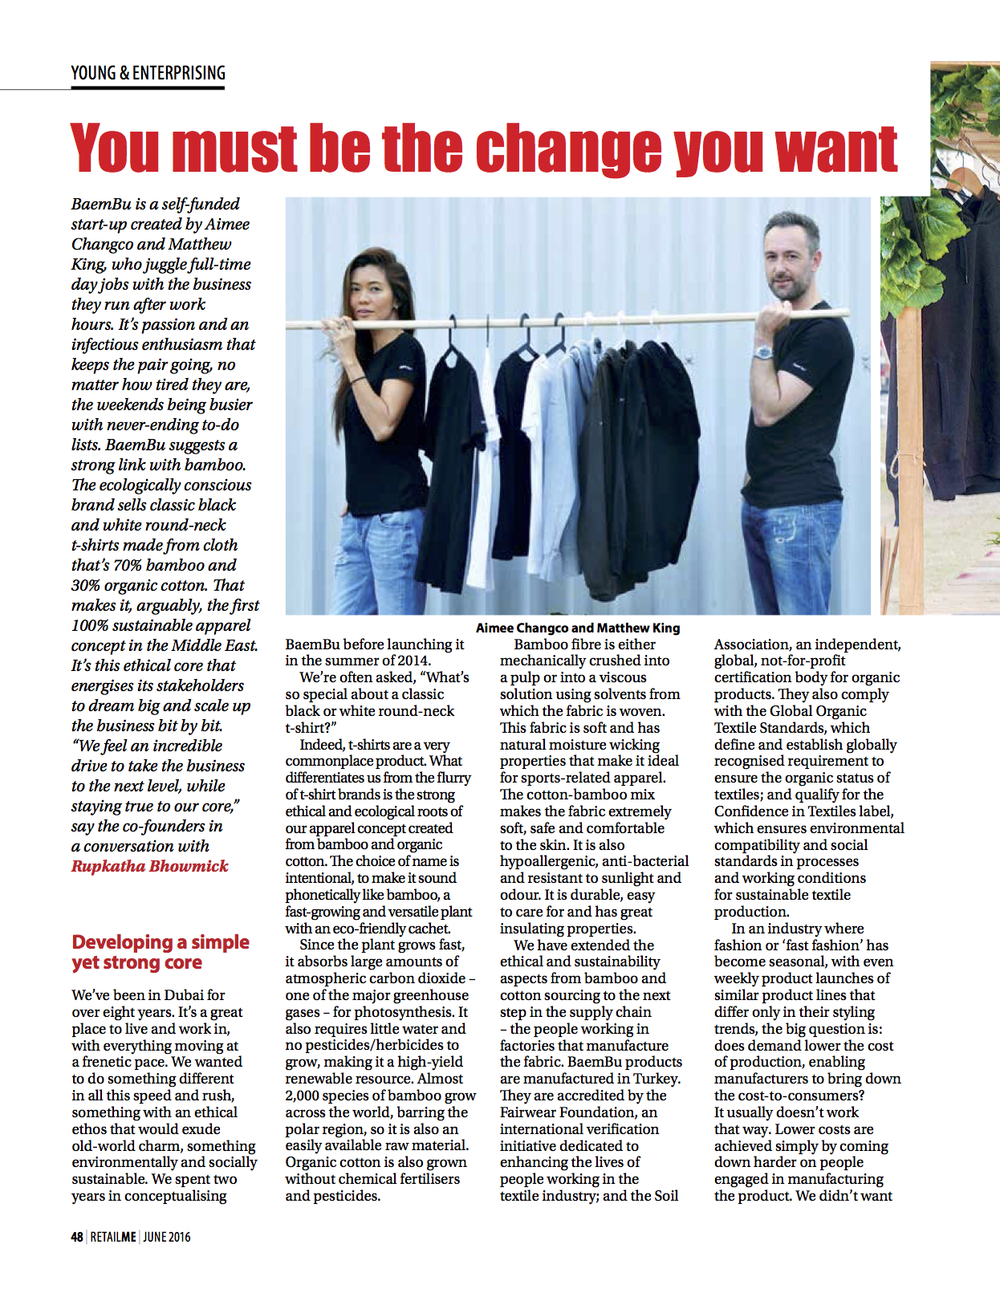 You must be the change you want, Images RetailME, June 2016.jpg